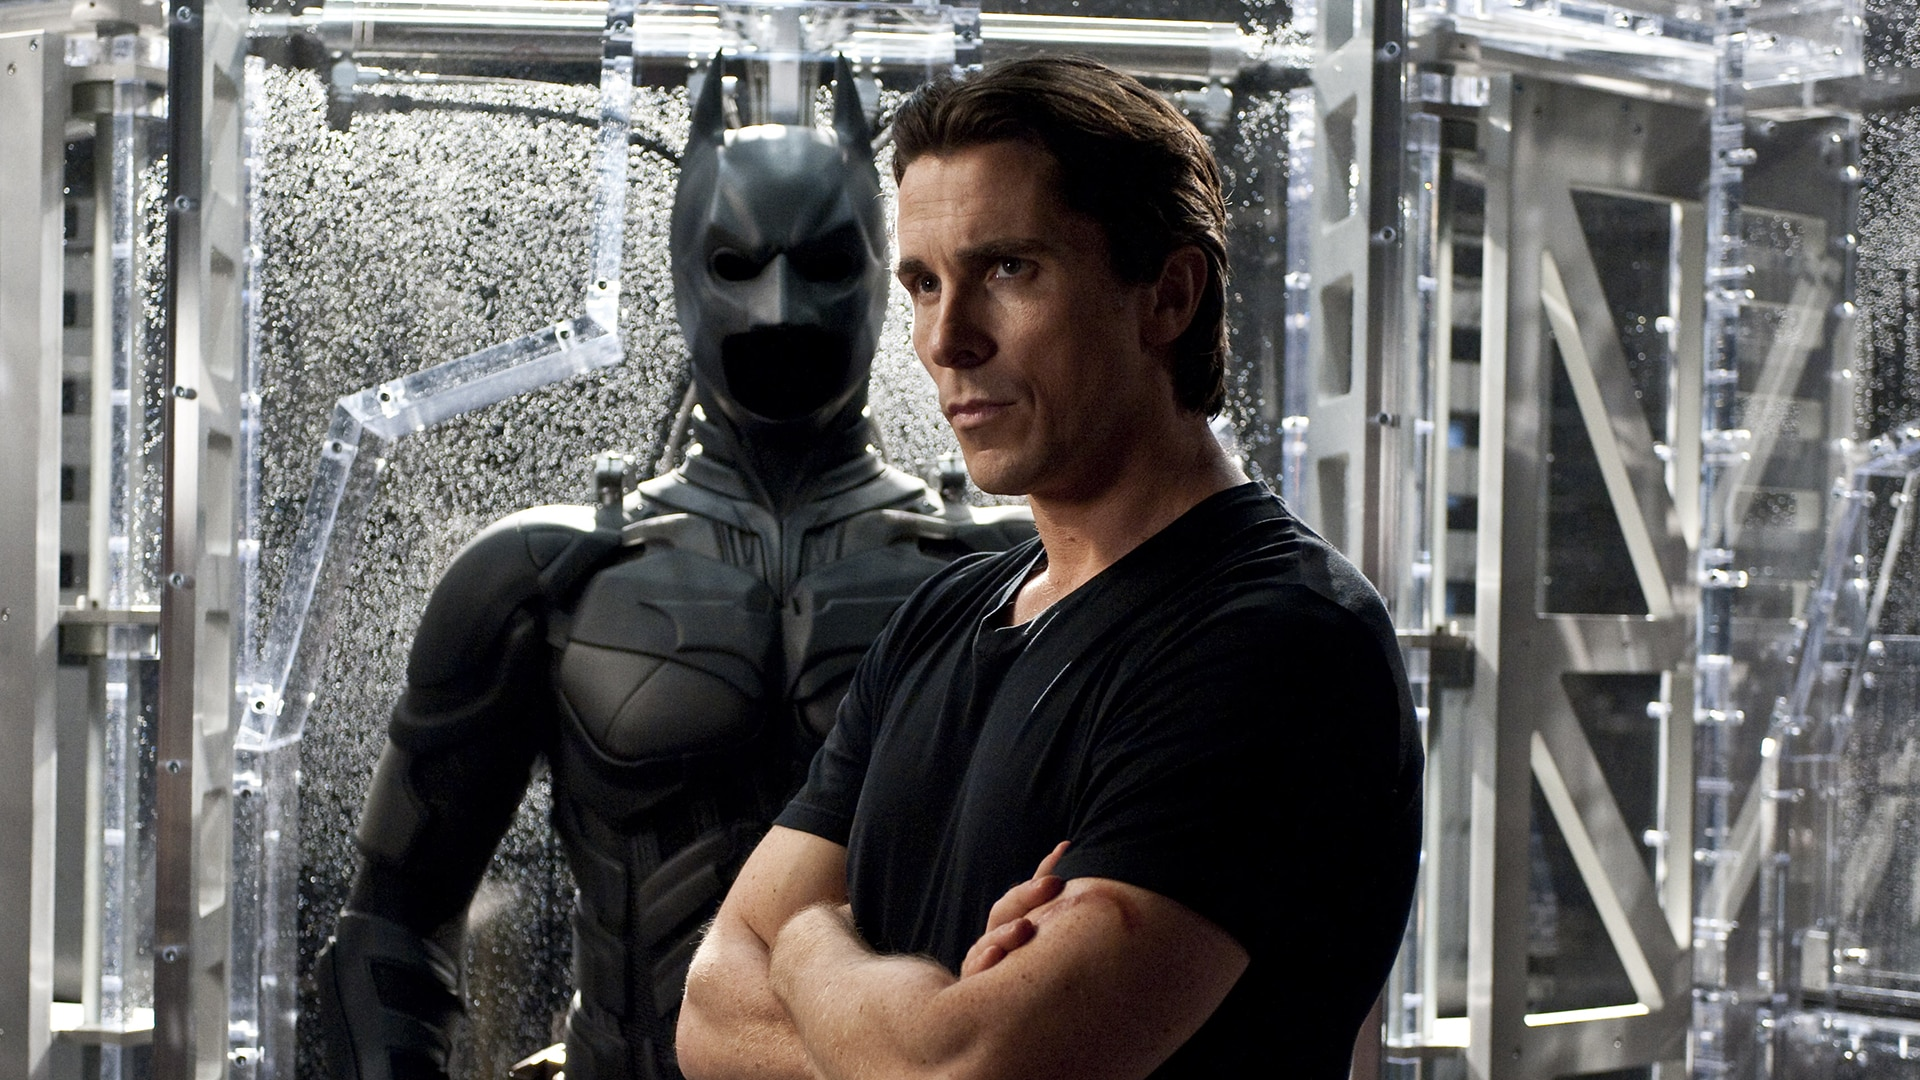 návrat temného rytiera the dark knight rises christian bale